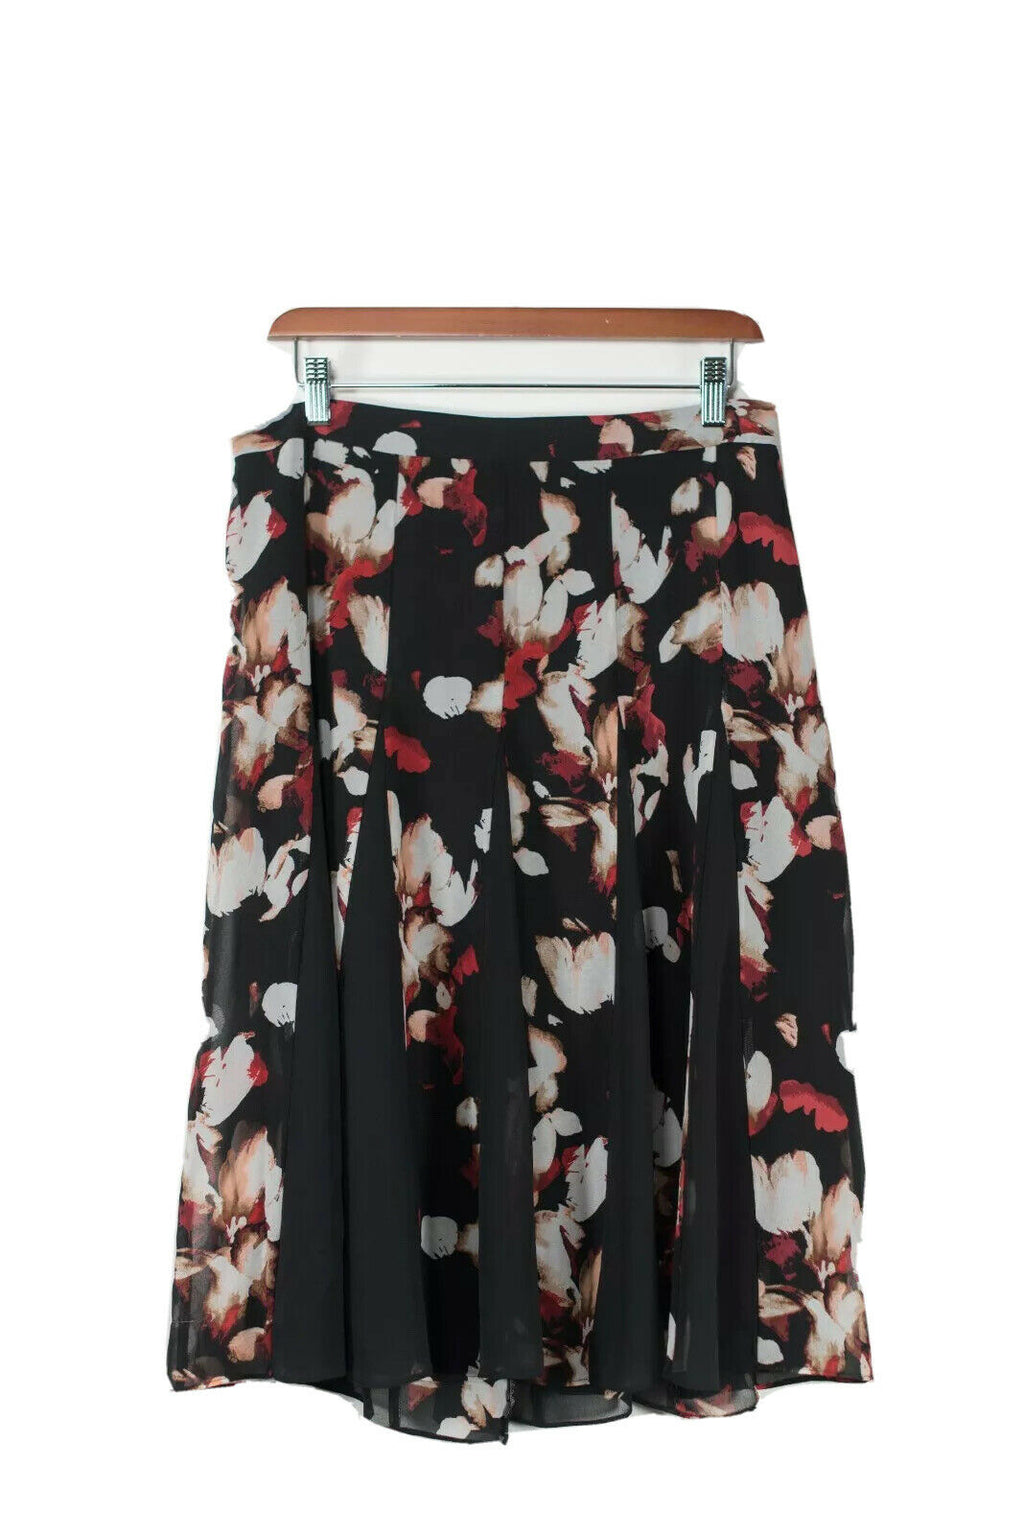 White House Black Market Womens Size 8 Black Red Skirt Floral Printed Panel NWT